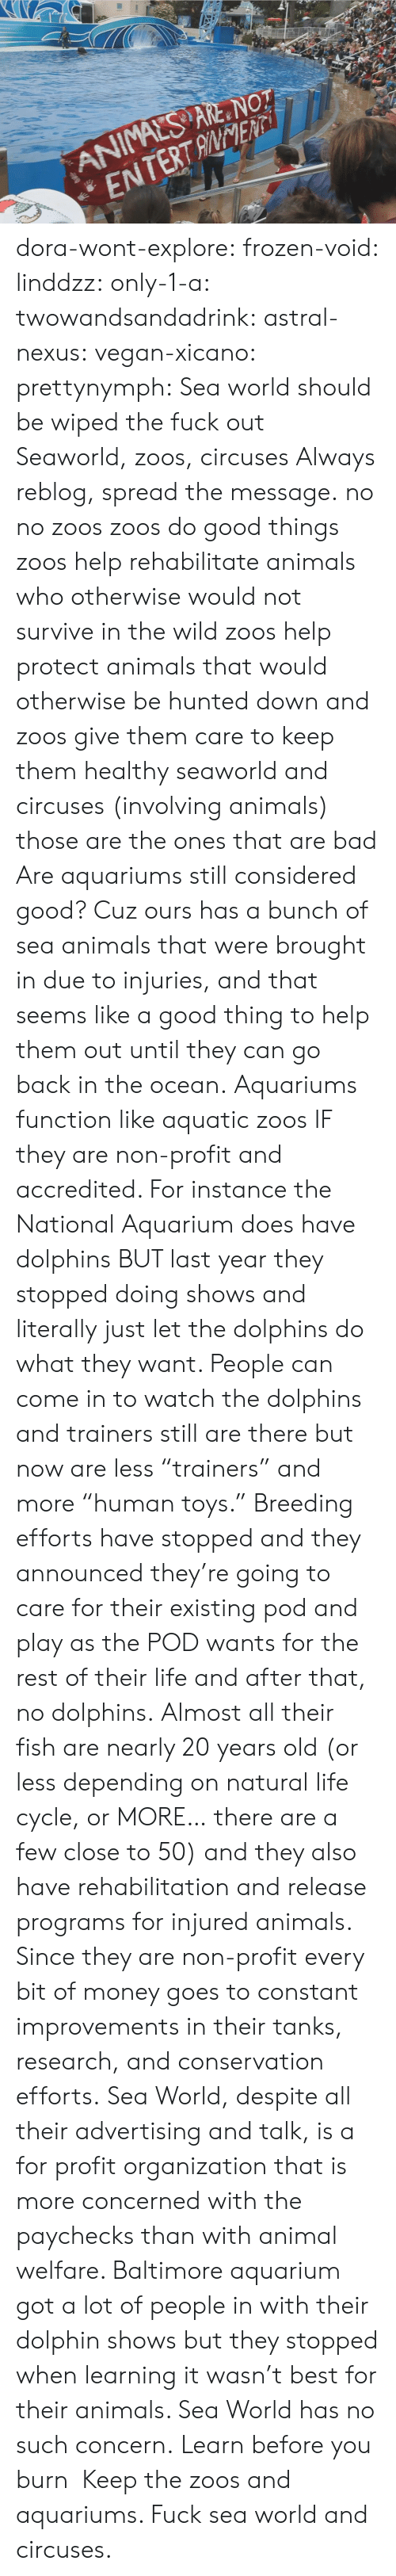 "Cycle: ANIMALS ARE NOT  ENTERTANENTi dora-wont-explore:   frozen-void:  linddzz:  only-1-a:  twowandsandadrink:  astral-nexus:  vegan-xicano:  prettynymph:  Sea world should be wiped the fuck out  Seaworld, zoos, circuses  Always reblog, spread the message.  no no zoos zoos do good things zoos help rehabilitate animals who otherwise would not survive in the wild zoos help protect animals that would otherwise be hunted down and zoos give them care to keep them healthy seaworld and circuses (involving animals) those are the ones that are bad  Are aquariums still considered good? Cuz ours has a bunch of sea animals that were brought in due to injuries, and that seems like a good thing to help them out until they can go back in the ocean.  Aquariums function like aquatic zoos IF they are non-profit and accredited. For instance the National Aquarium does have dolphins BUT last year they stopped doing shows and literally just let the dolphins do what they want. People can come in to watch the dolphins and trainers still are there but now are less ""trainers"" and more ""human toys."" Breeding efforts have stopped and they announced they're going to care for their existing pod and play as the POD wants for the rest of their life and after that, no dolphins. Almost all their fish are nearly 20 years old (or less depending on natural life cycle, or MORE… there are a few close to 50) and they also have rehabilitation and release programs for injured animals. Since they are non-profit every bit of money goes to constant improvements in their tanks, research, and conservation efforts. Sea World, despite all their advertising and talk, is a for profit organization that is more concerned with the paychecks than with animal welfare. Baltimore aquarium got a lot of people in with their dolphin shows but they stopped when learning it wasn't best for their animals. Sea World has no such concern.  Learn before you burn   Keep the zoos and aquariums. Fuck sea world and circuses."